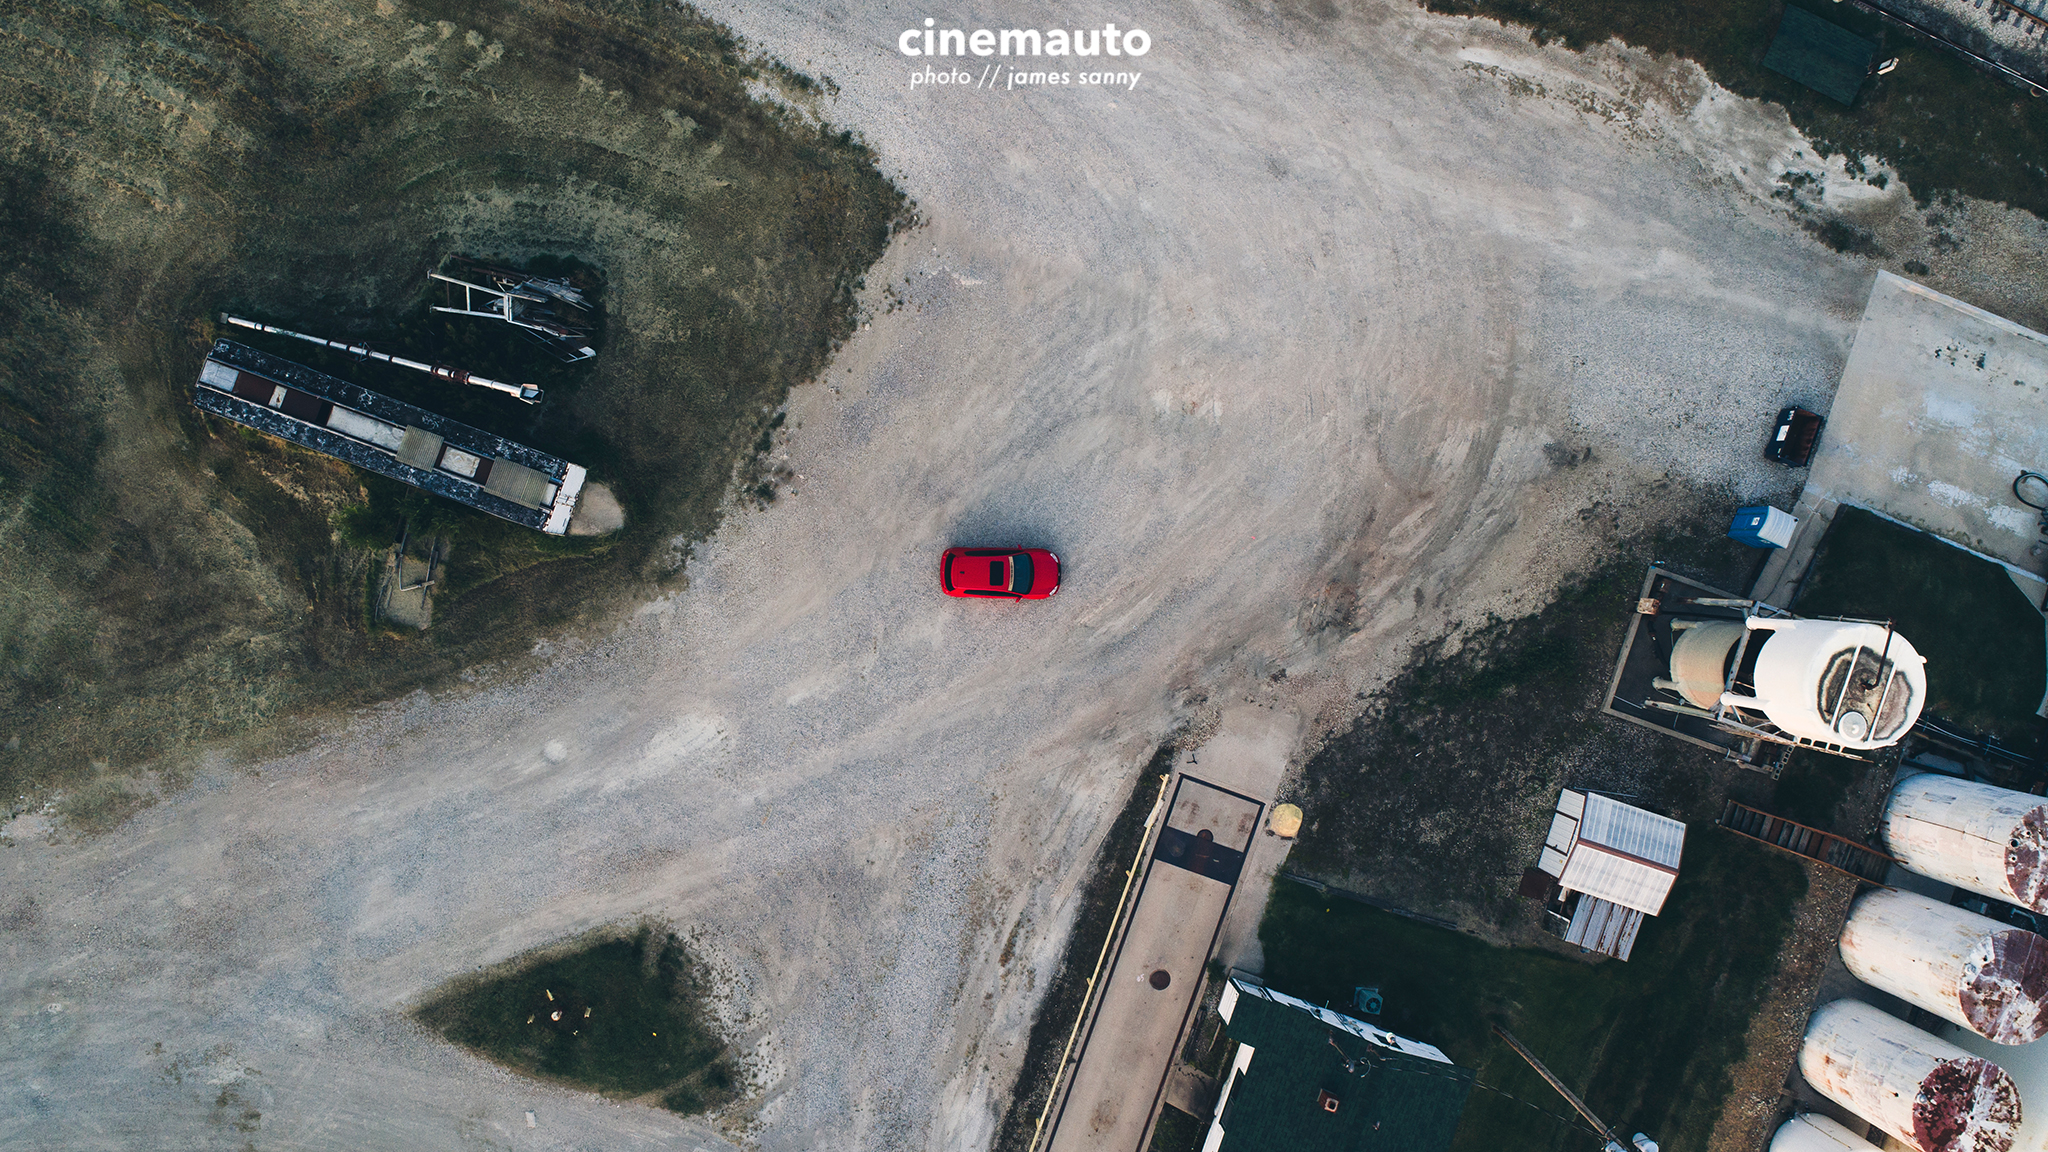 wichita-automotive-photographer-kansas-gti-drone1.jpg